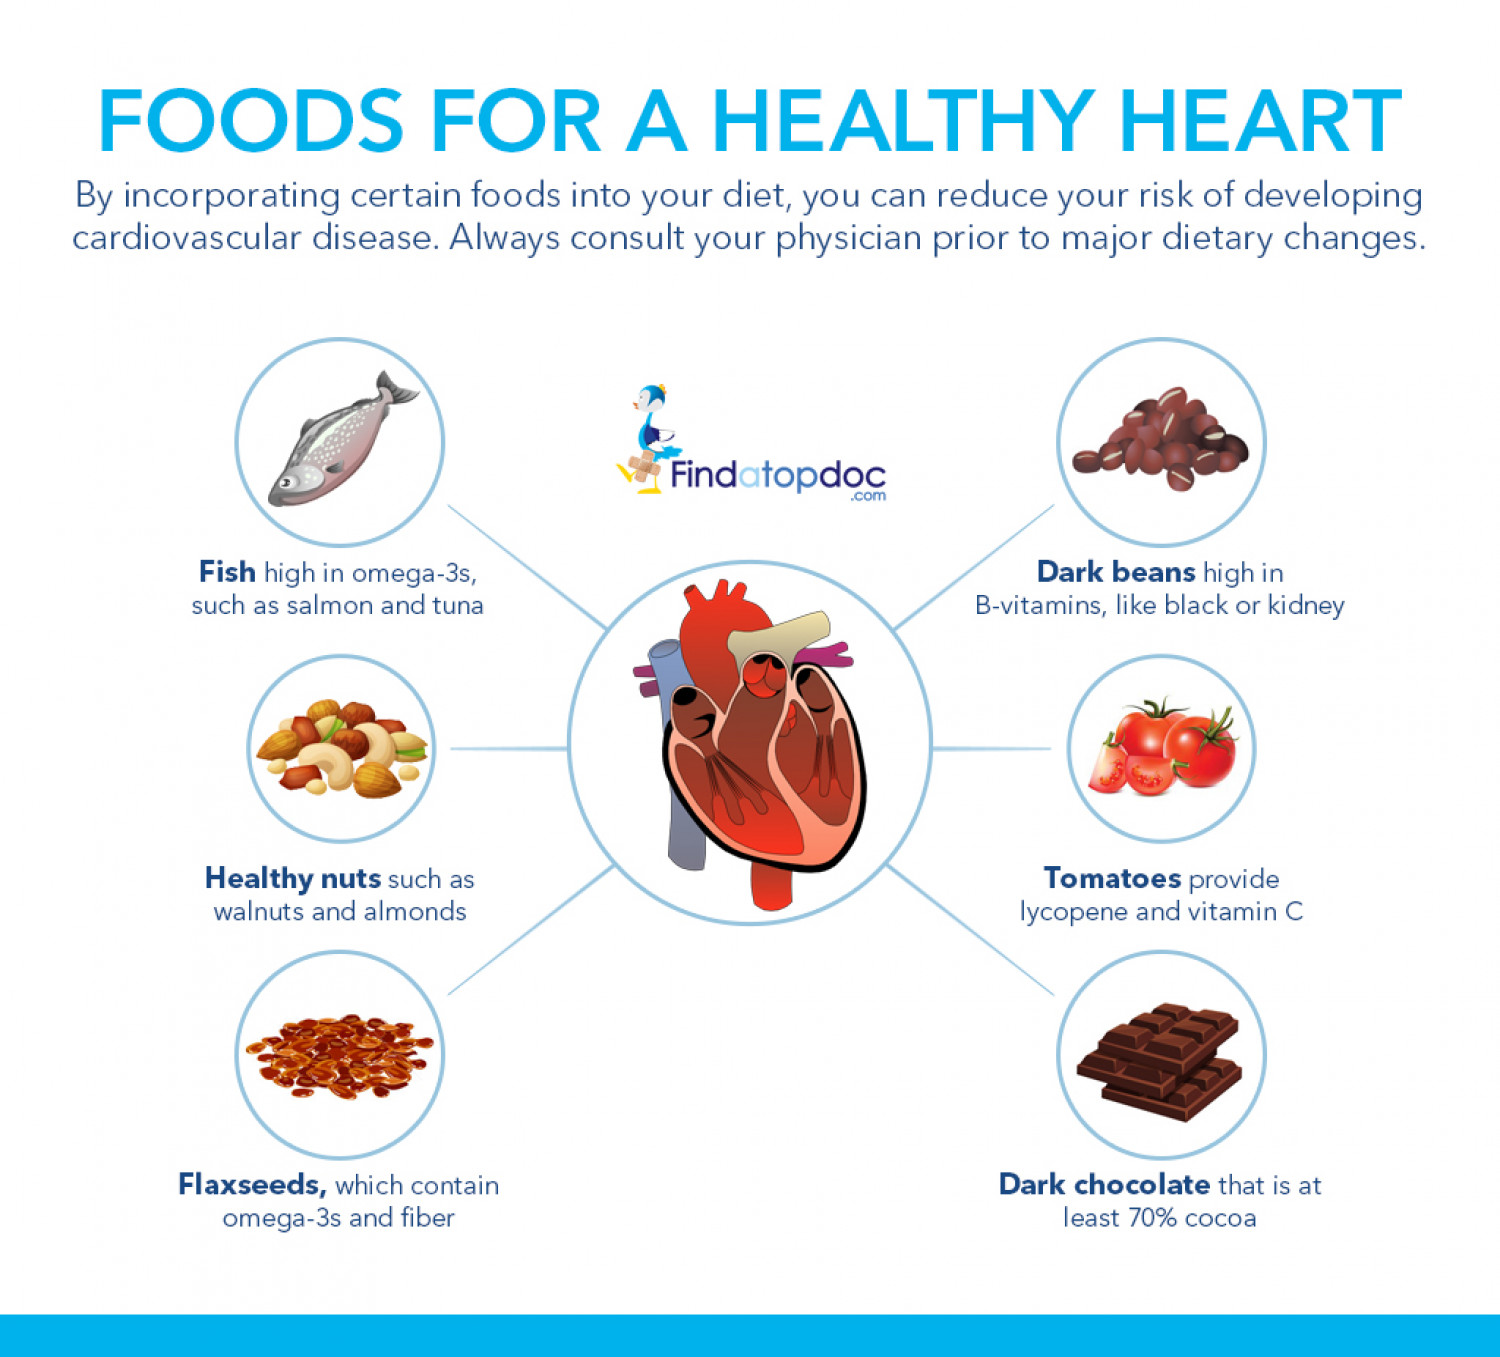 Best Foods For a Healthy Heart Infographic